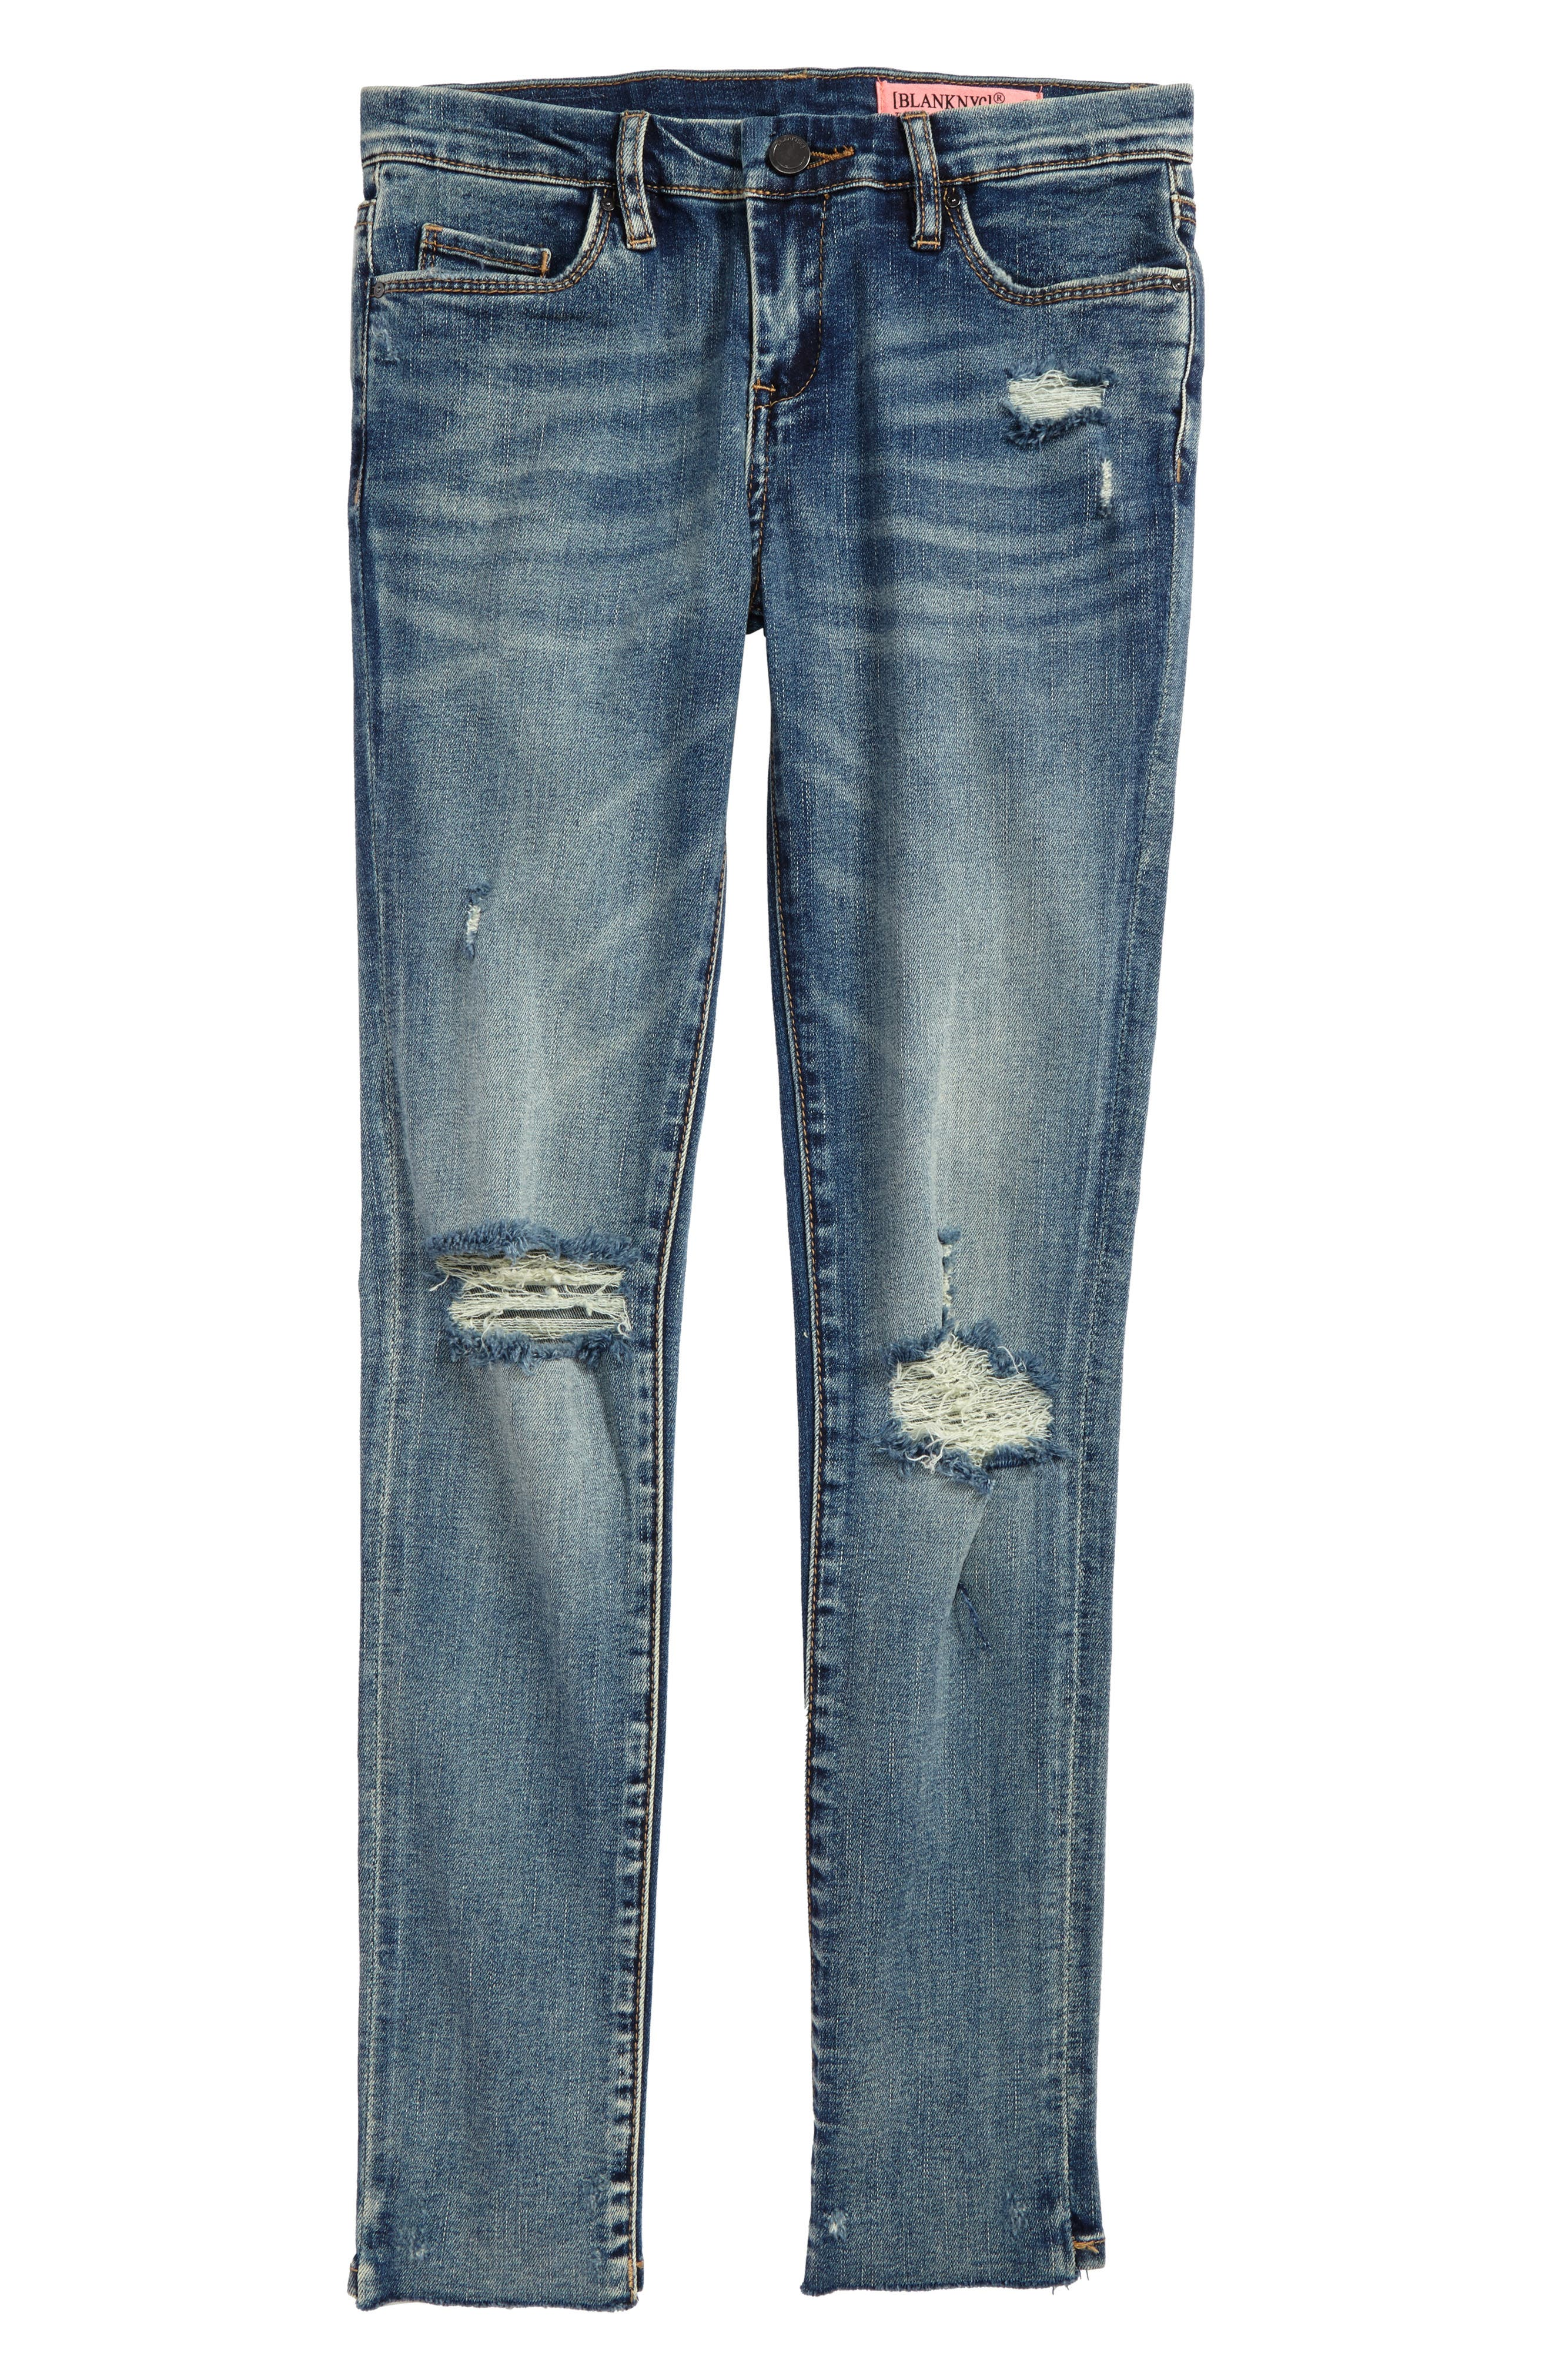 BLANKNYC Shot Not Distressed Skinny Jeans (Big Girls)